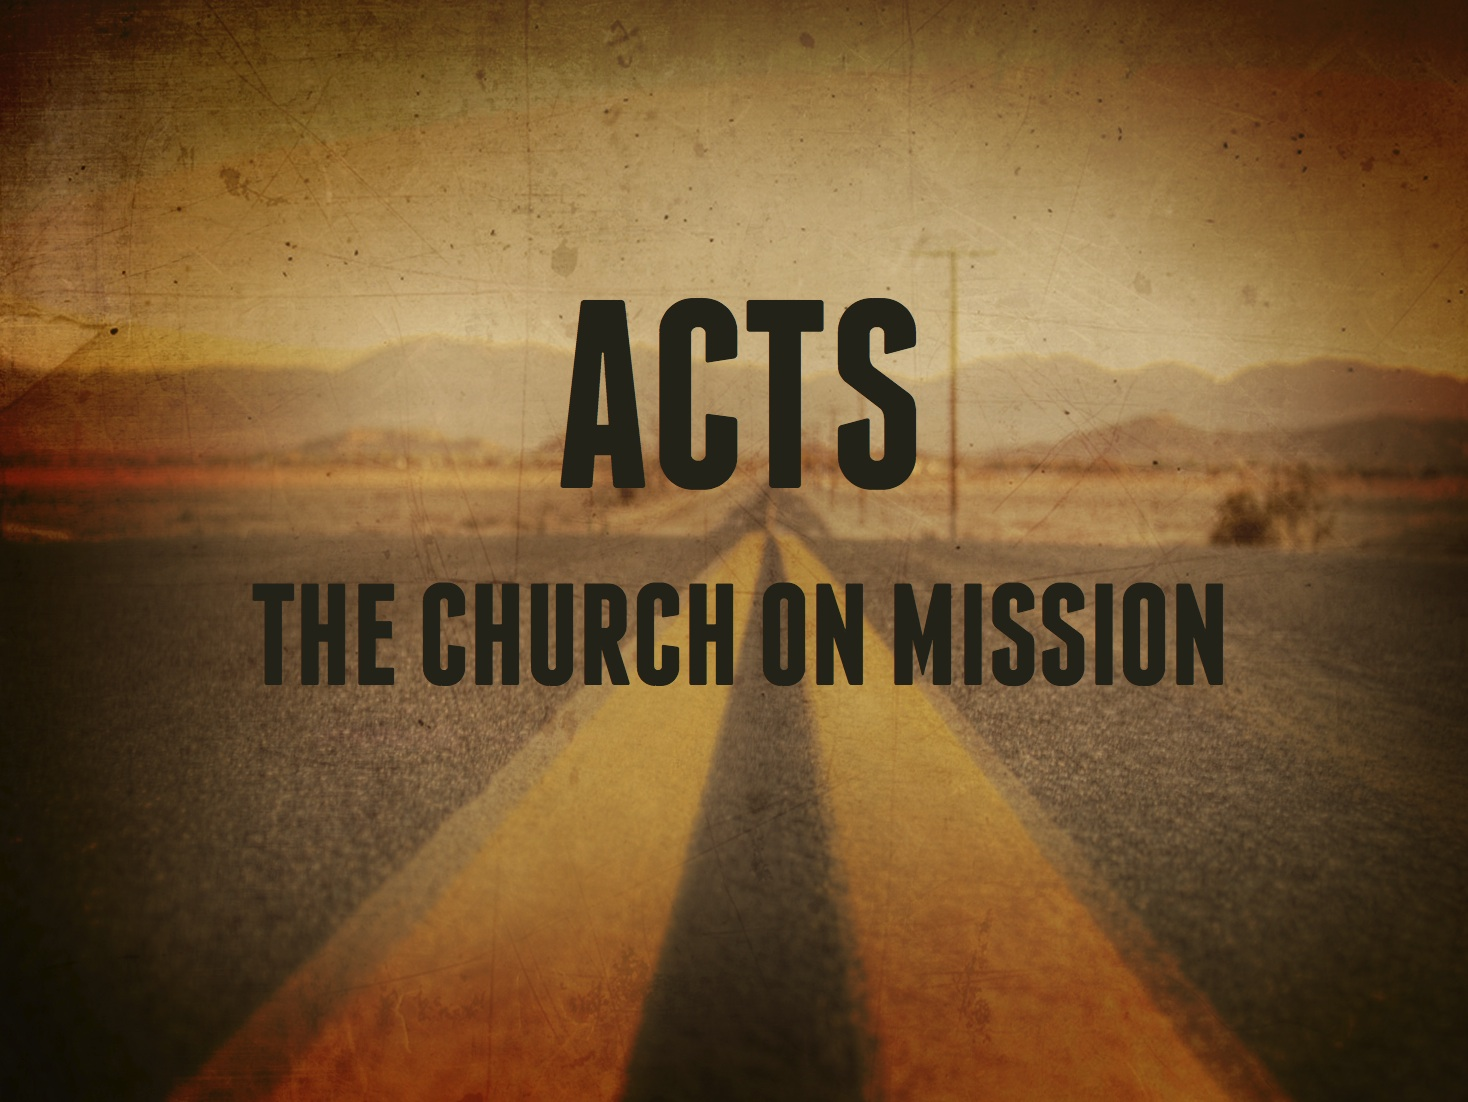 Acts lecture 34 (Acts 22- 24)